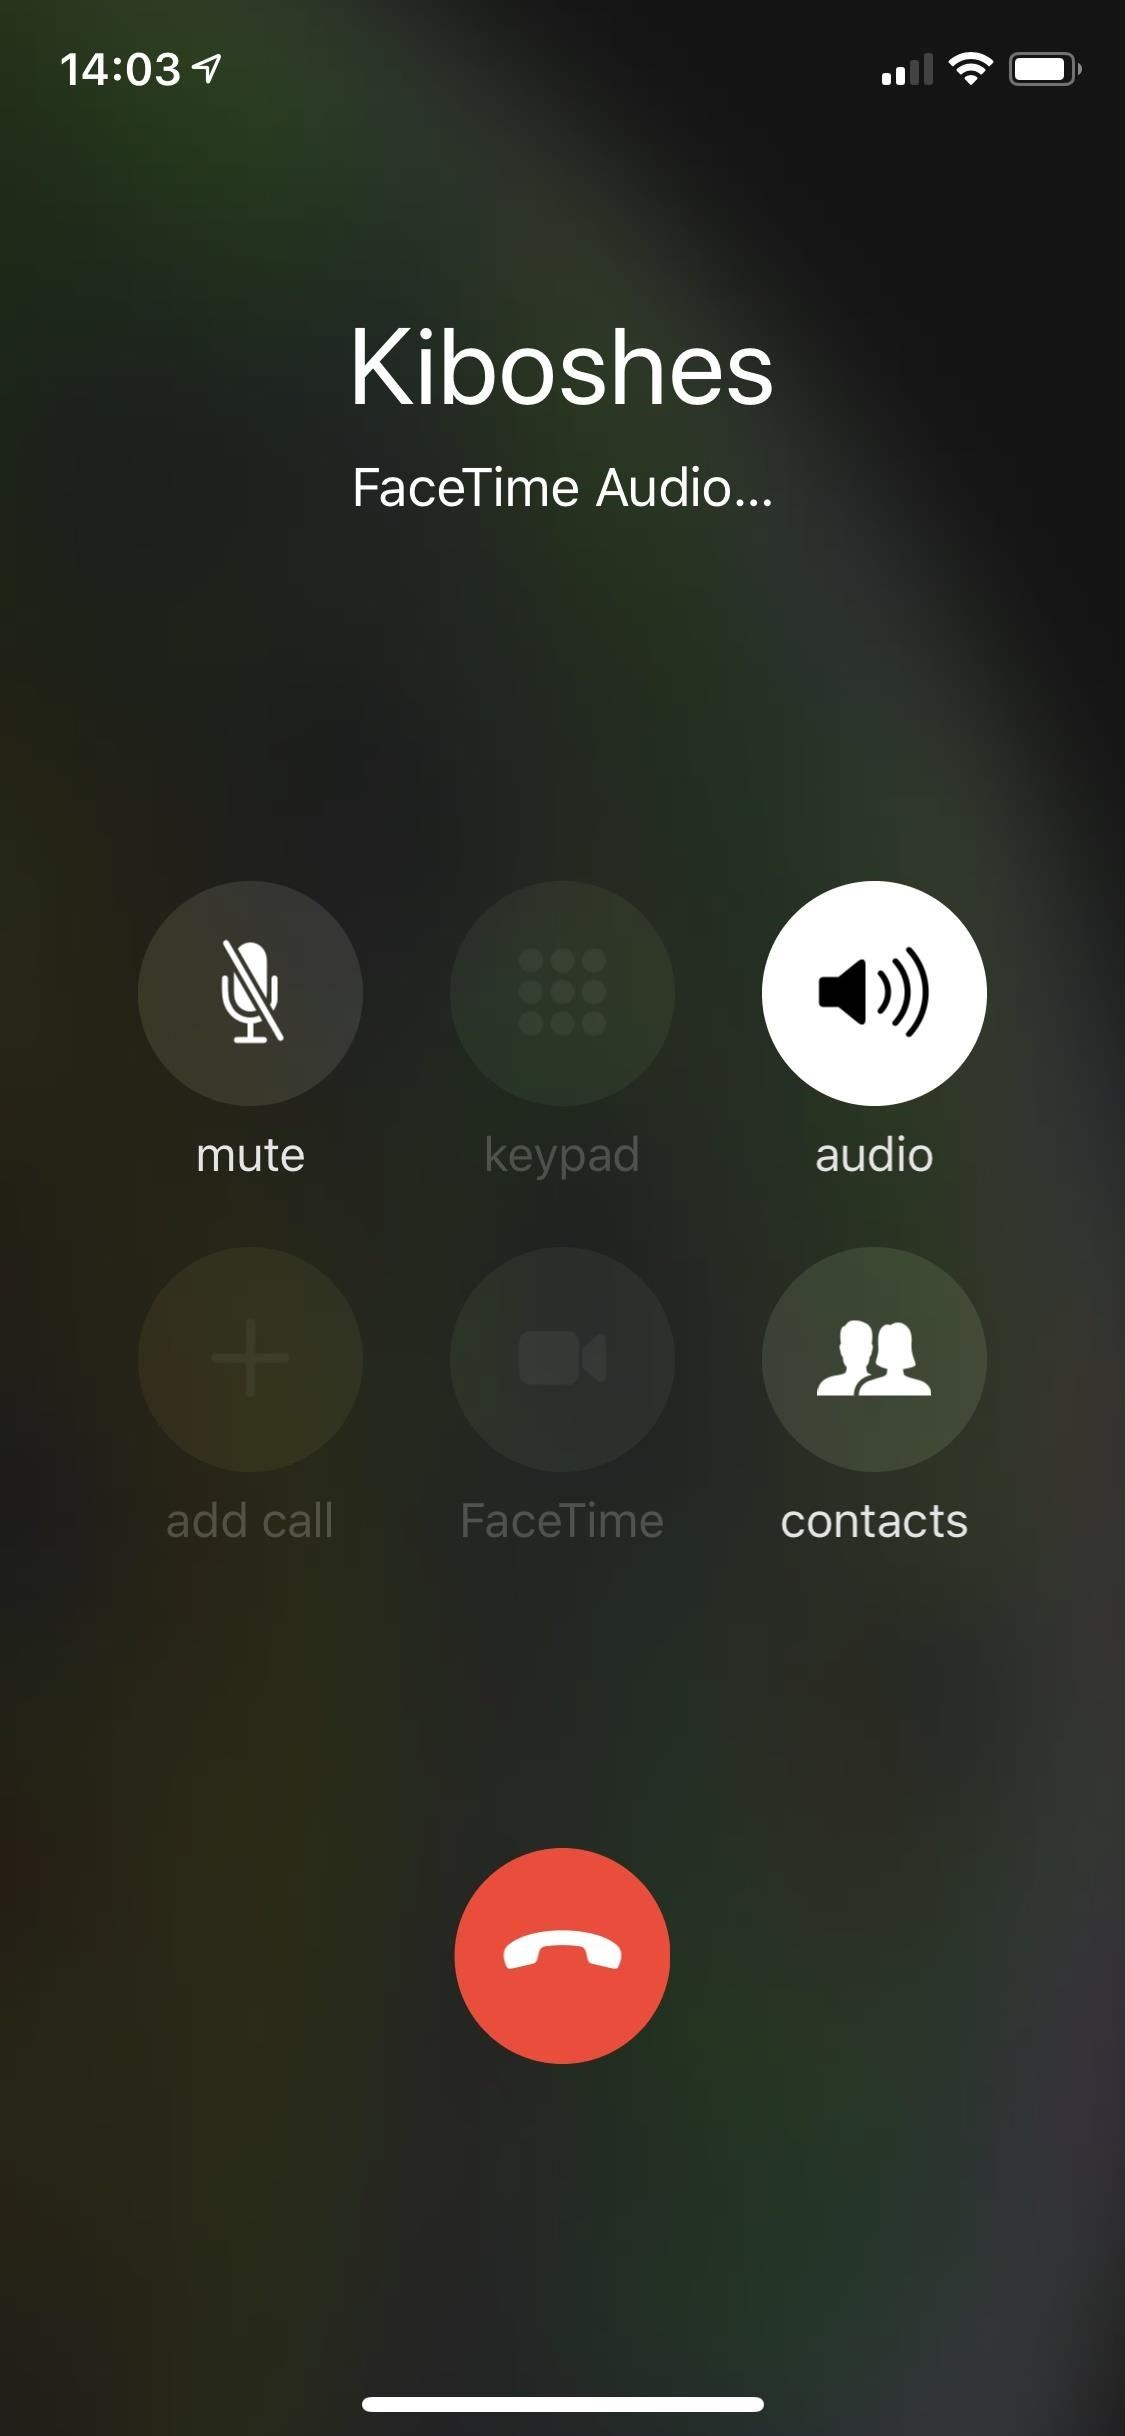 How to Turn on FaceTime iPhone Handsfree Automatically Audio calls